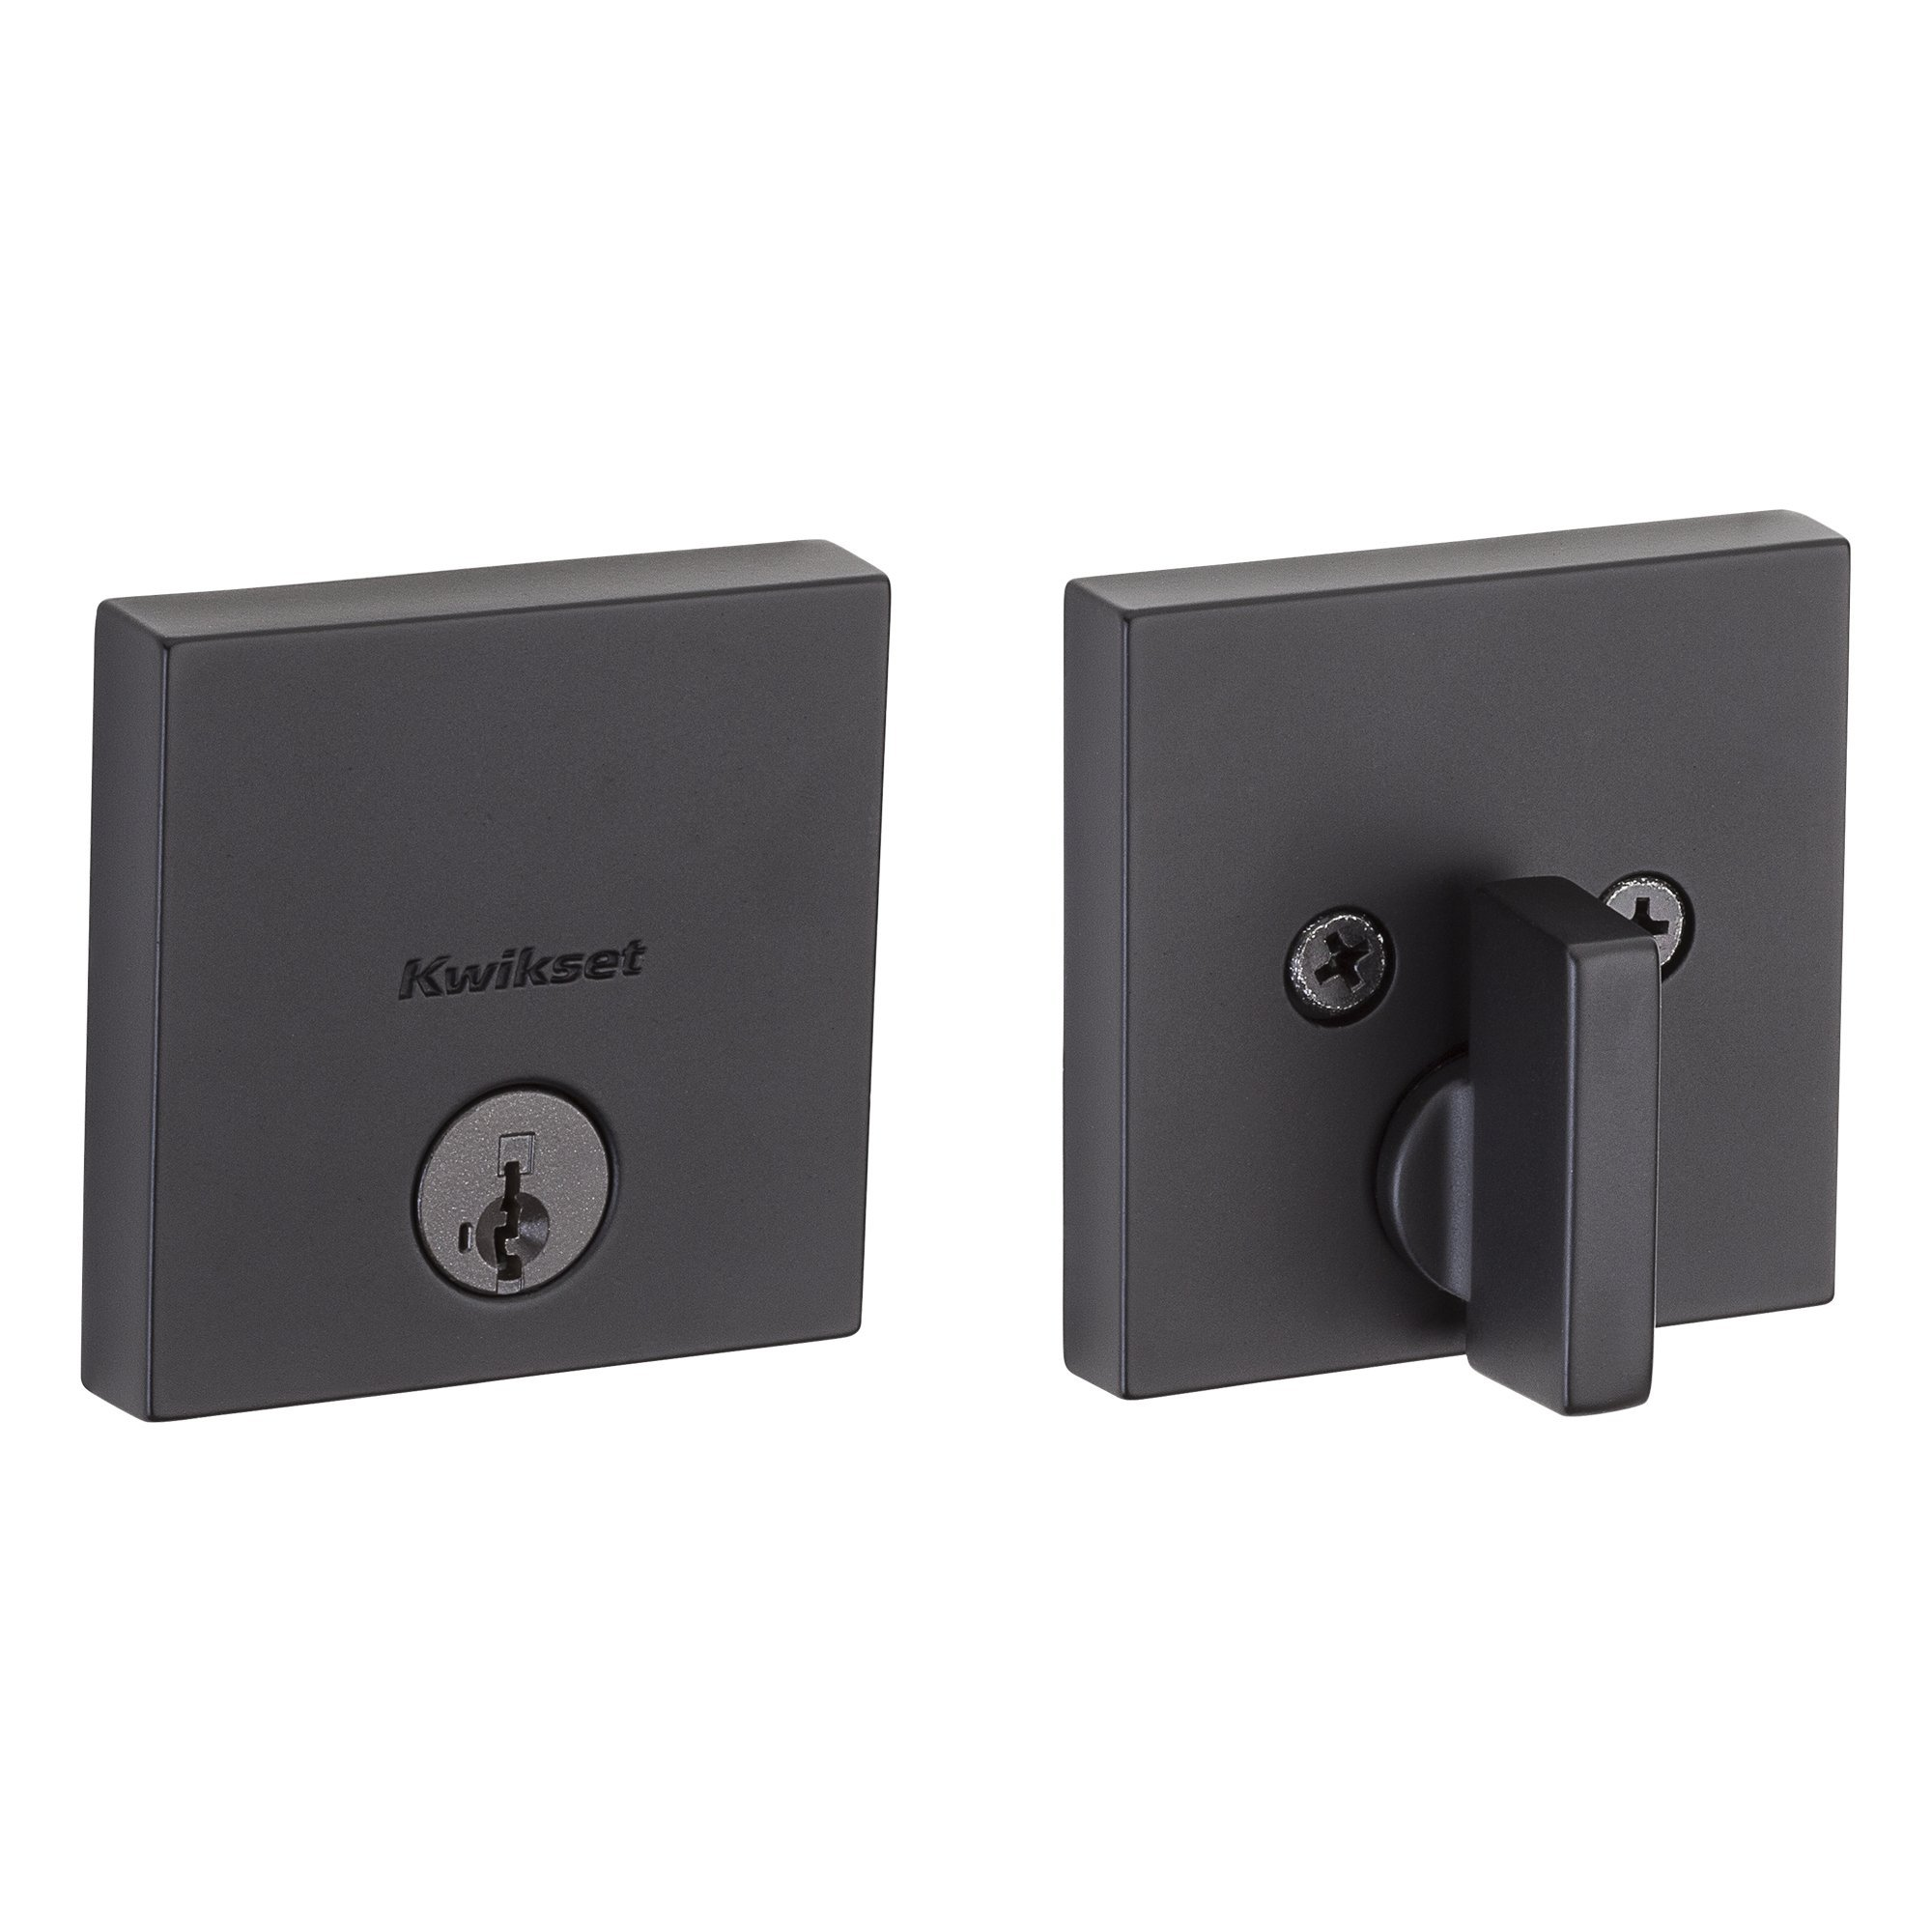 Kwikset 258 Downtown Low Profile Square Contemporary Deadbolt featuring SmartKey in Iron Black